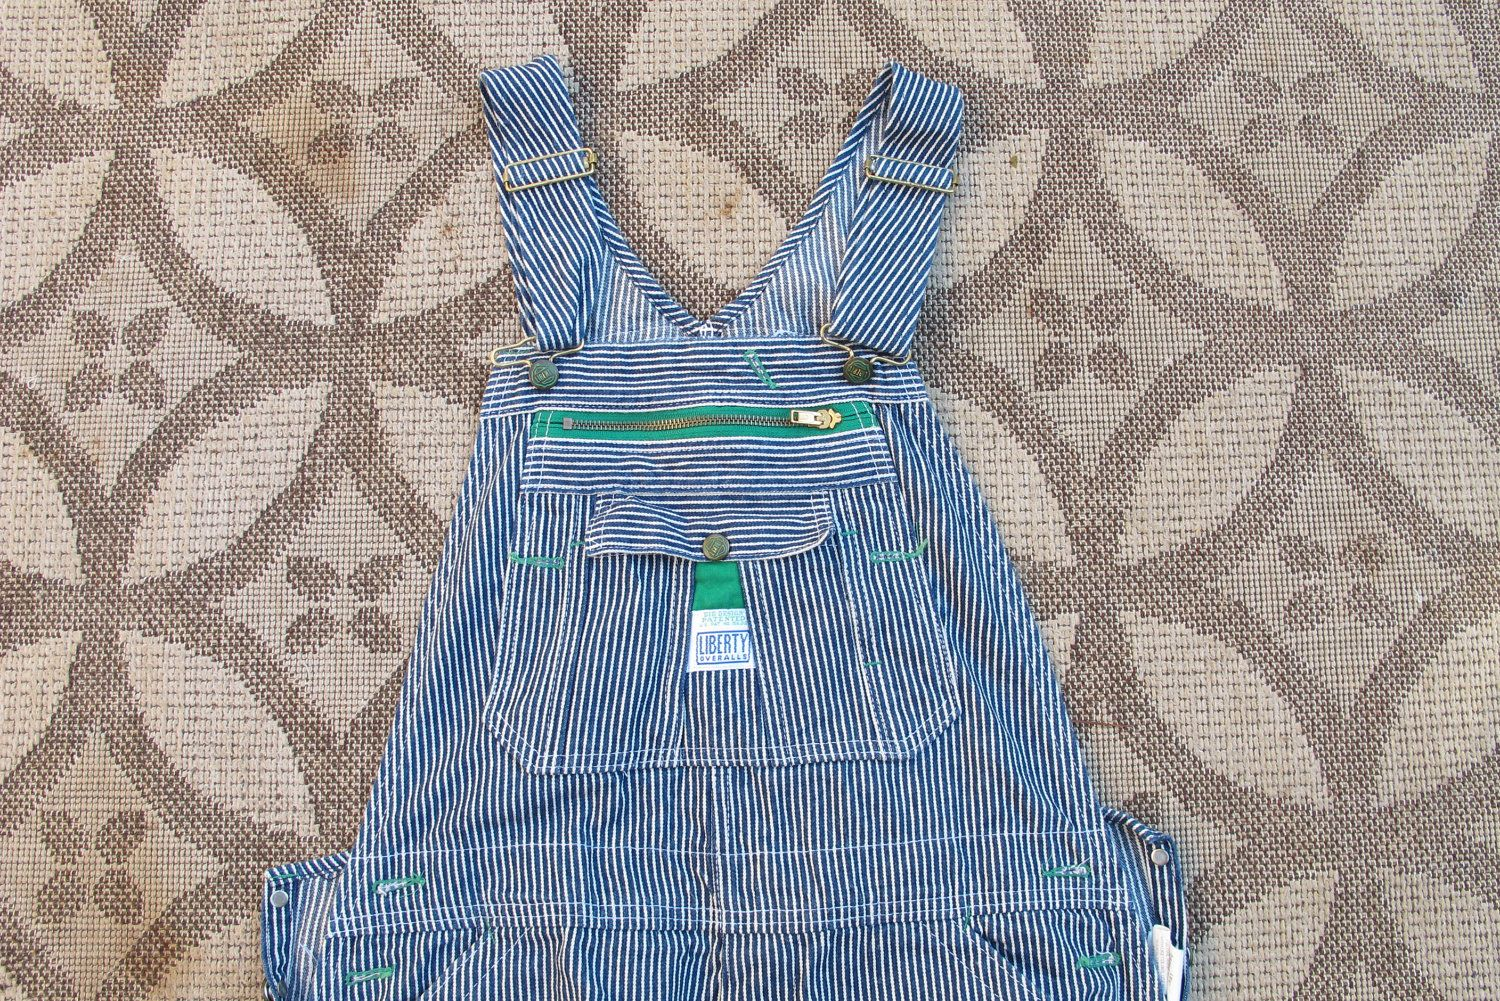 c41add3468b1 LIBERTY Brand Hickory Stripe Overalls - Made in USA - w36 x i30 - excellent  condition.  20.34